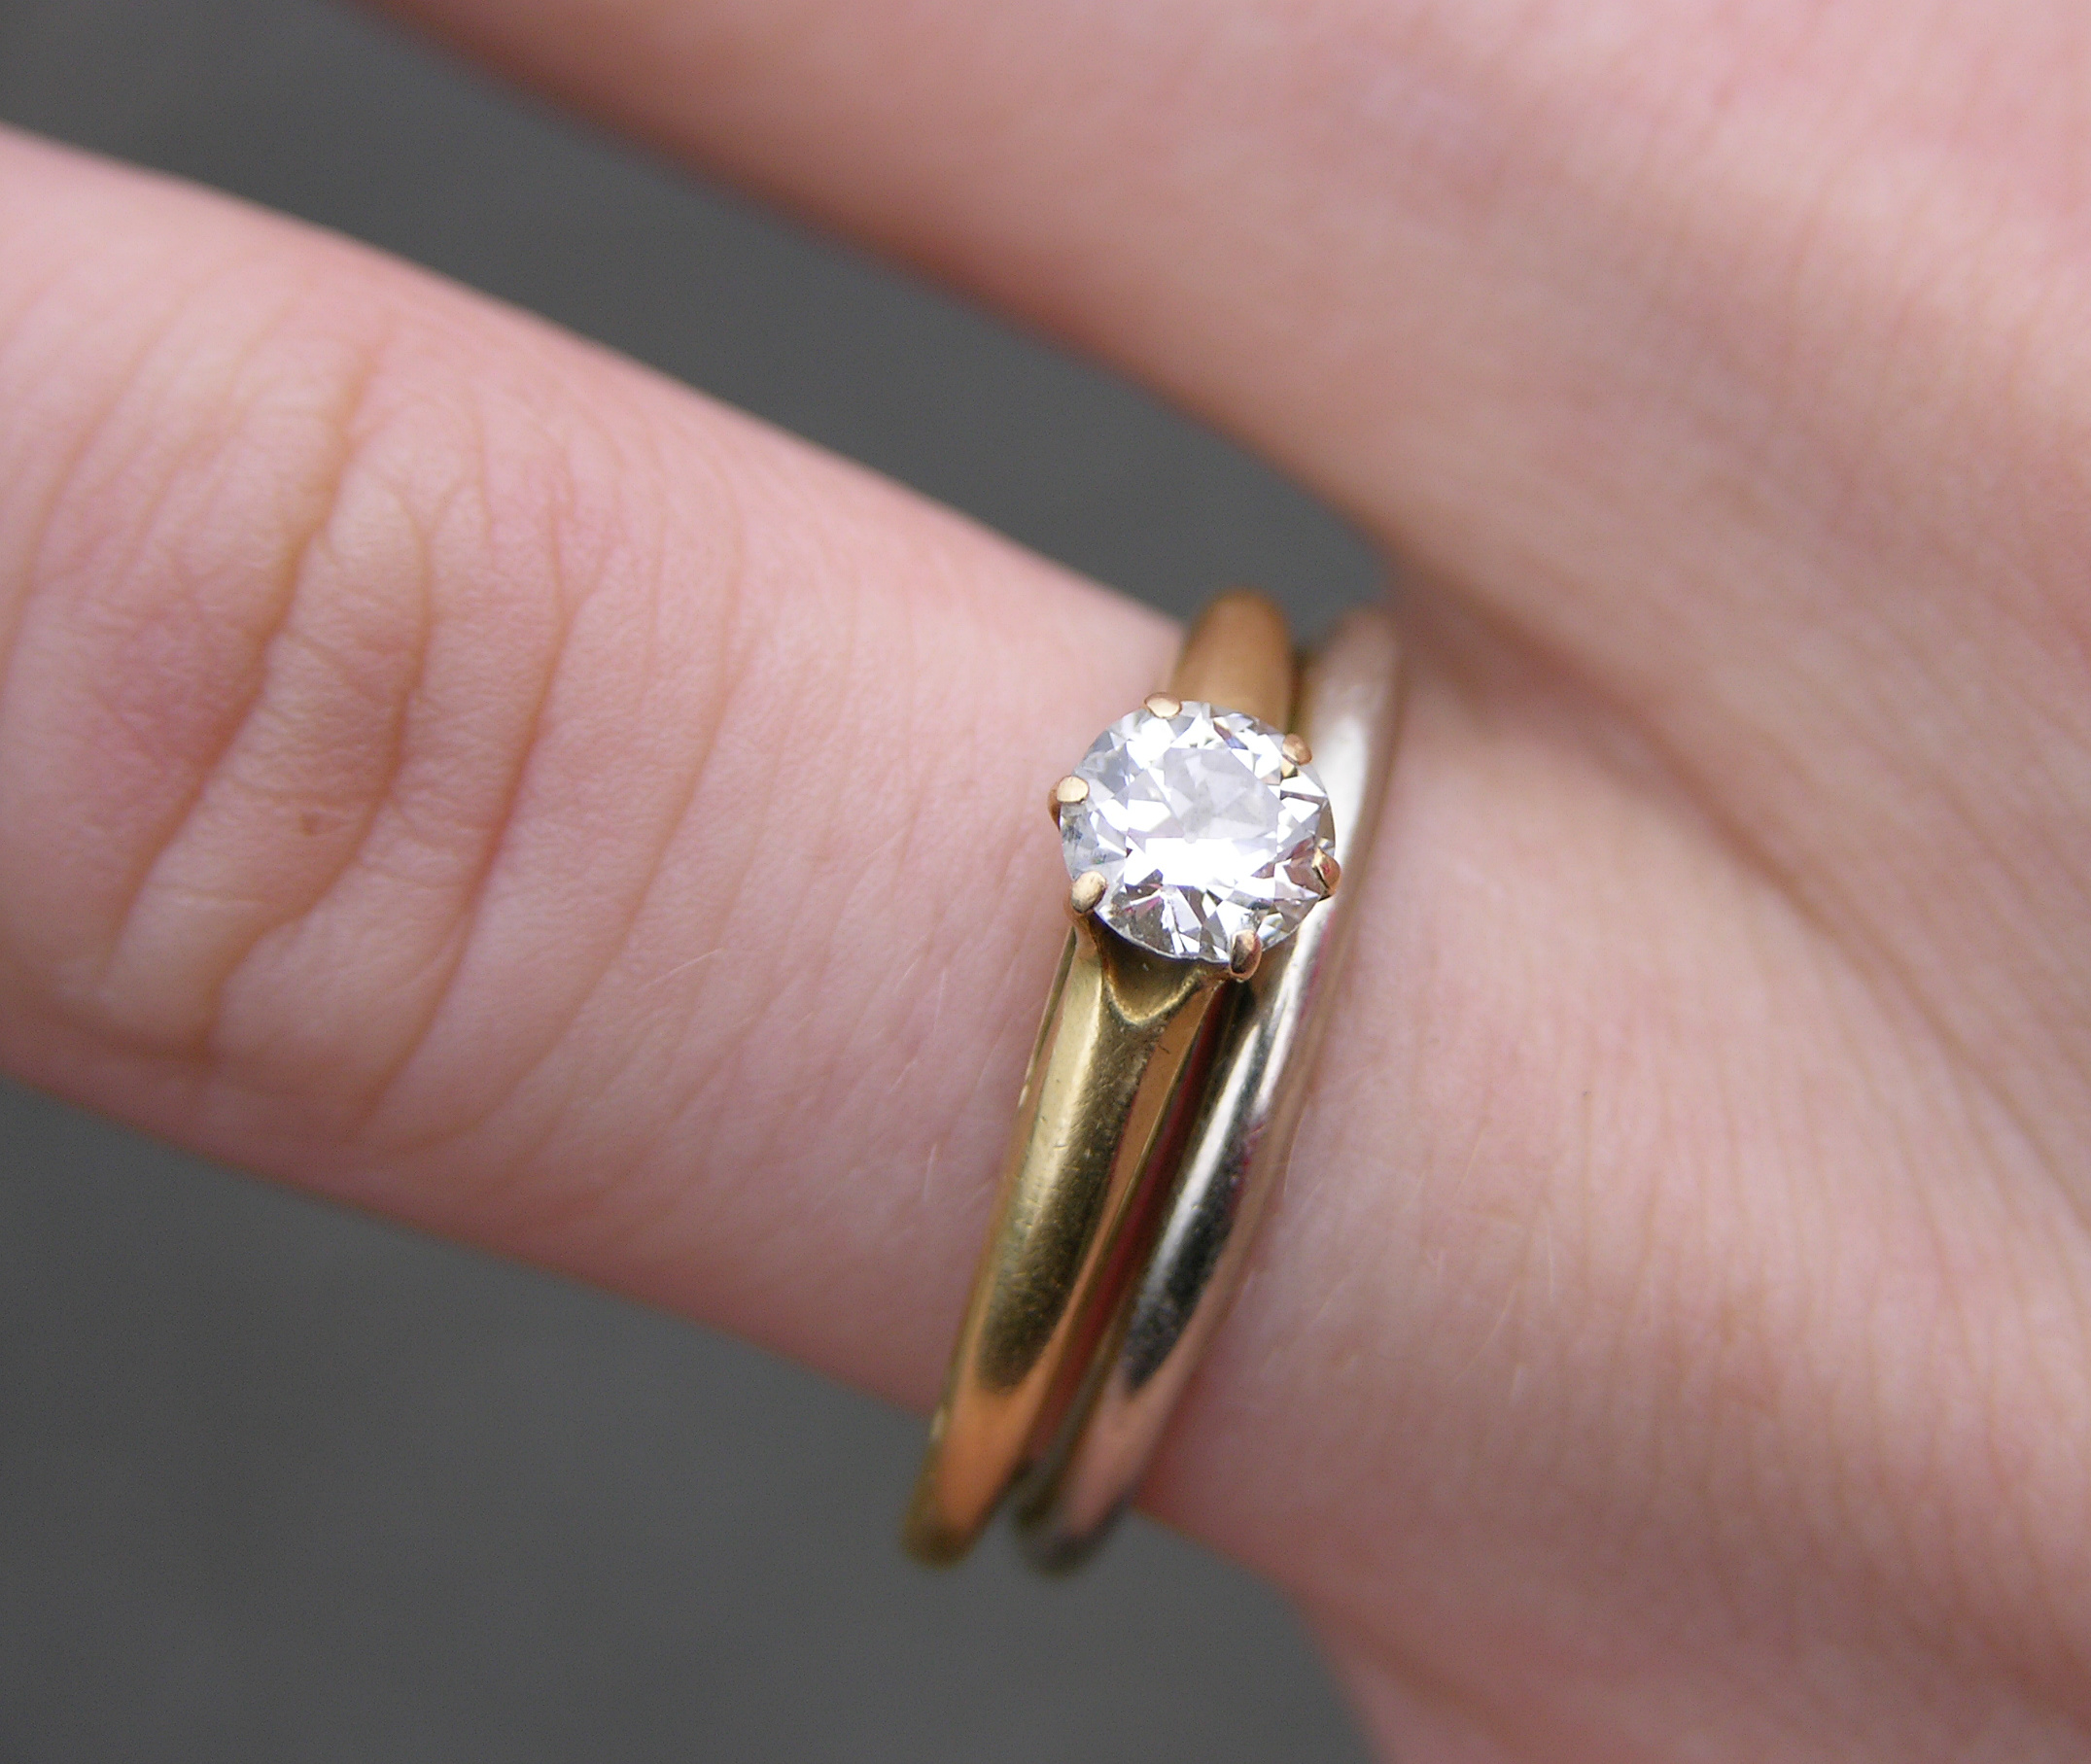 FileWedding and Engagement Rings 2151pxjpg